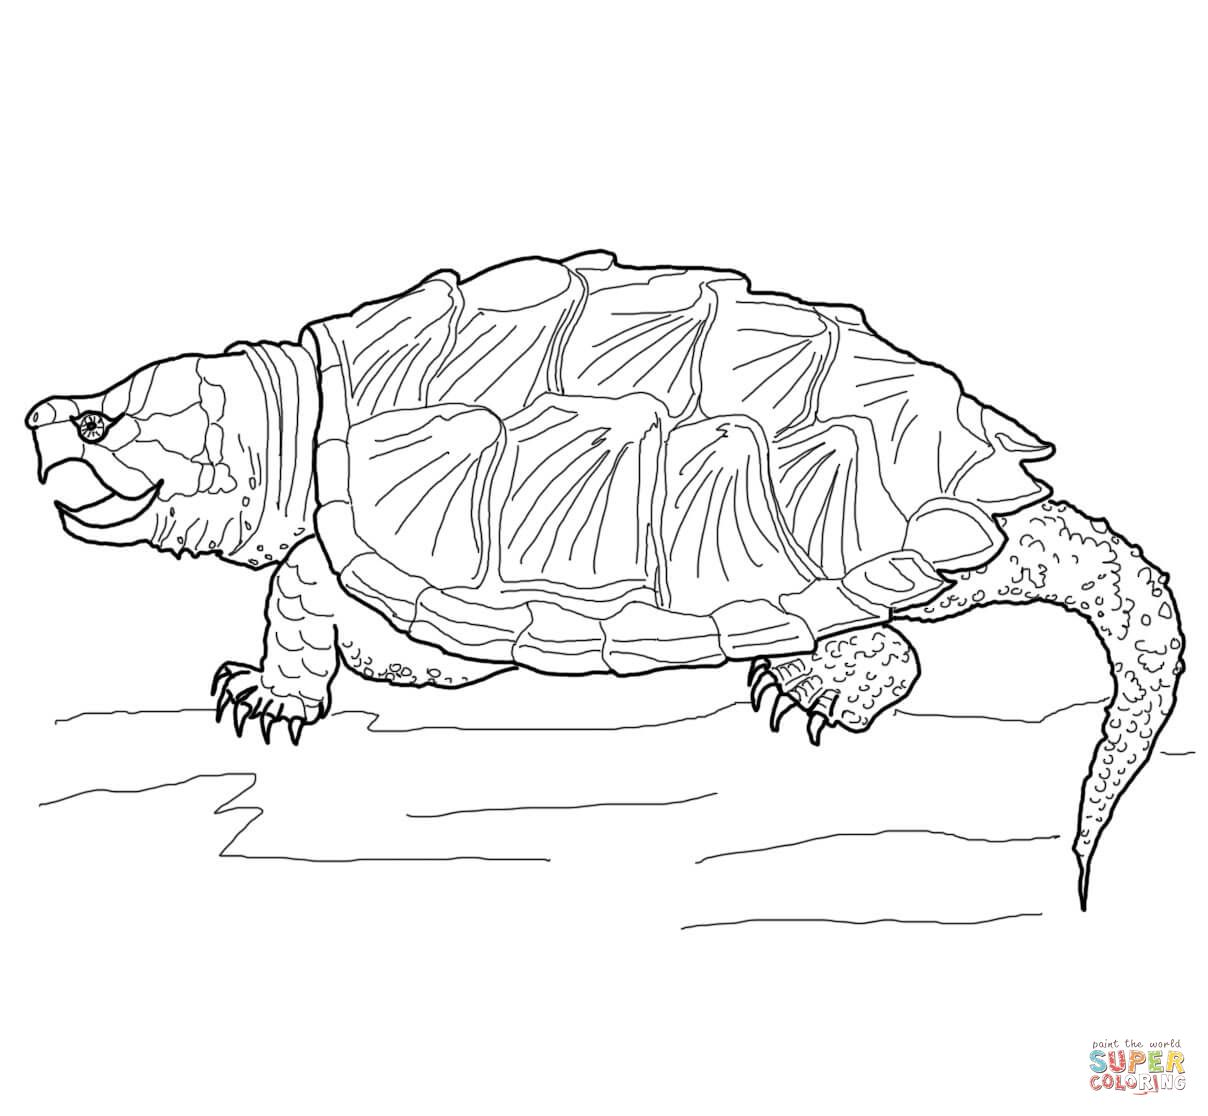 Realistic Turtle Coloring Pages Google Search Turtle Coloring